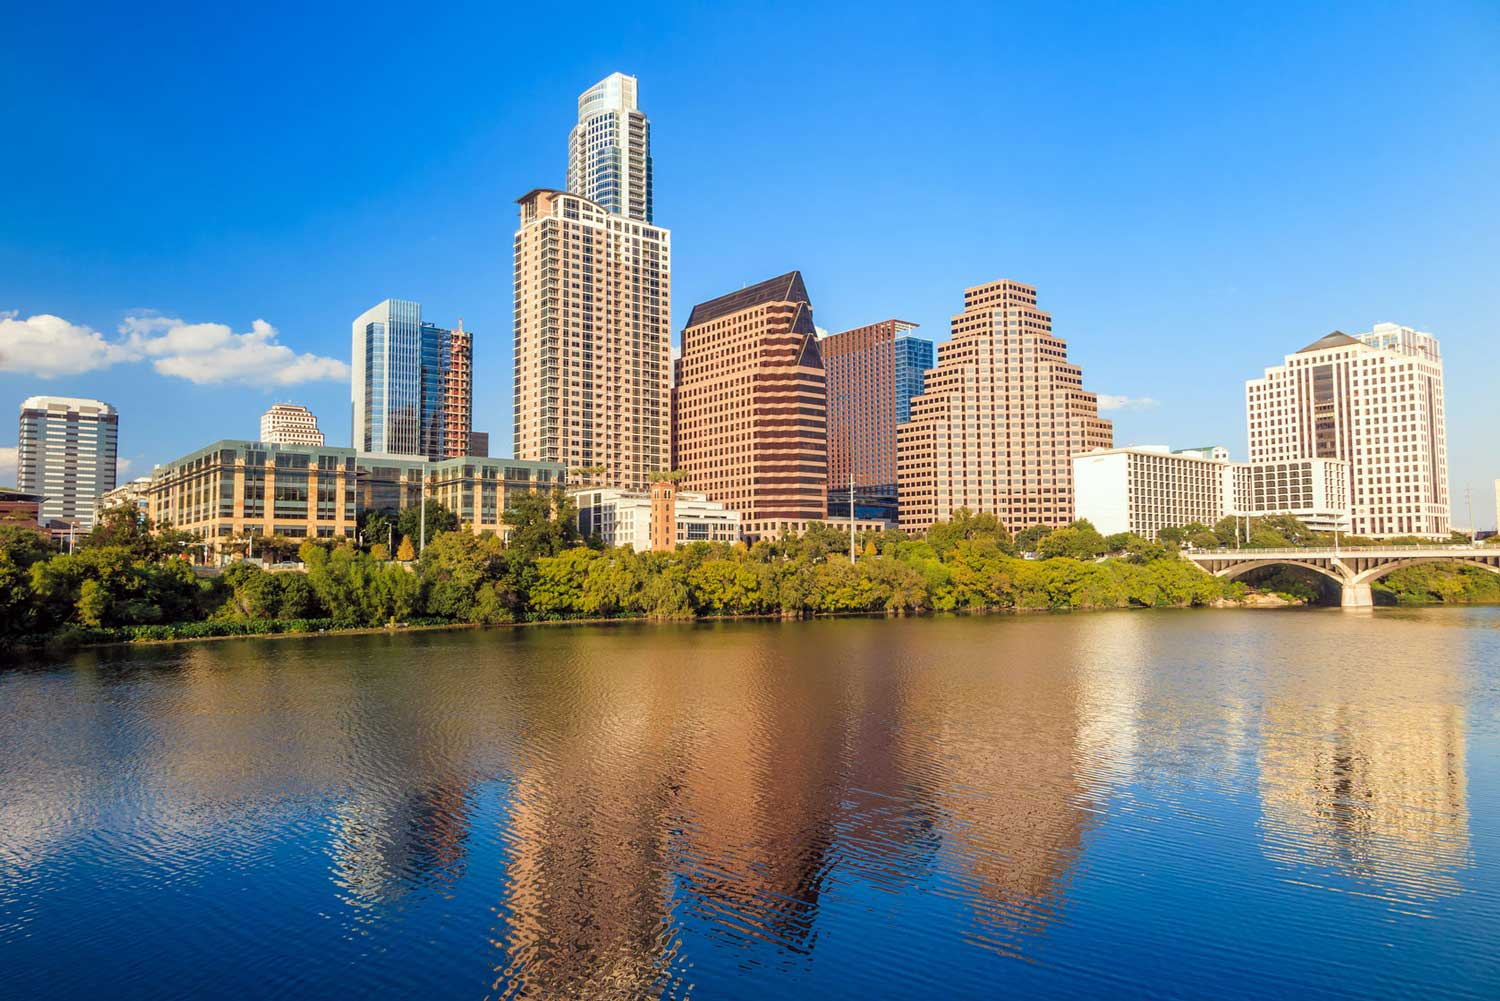 austin-texas background